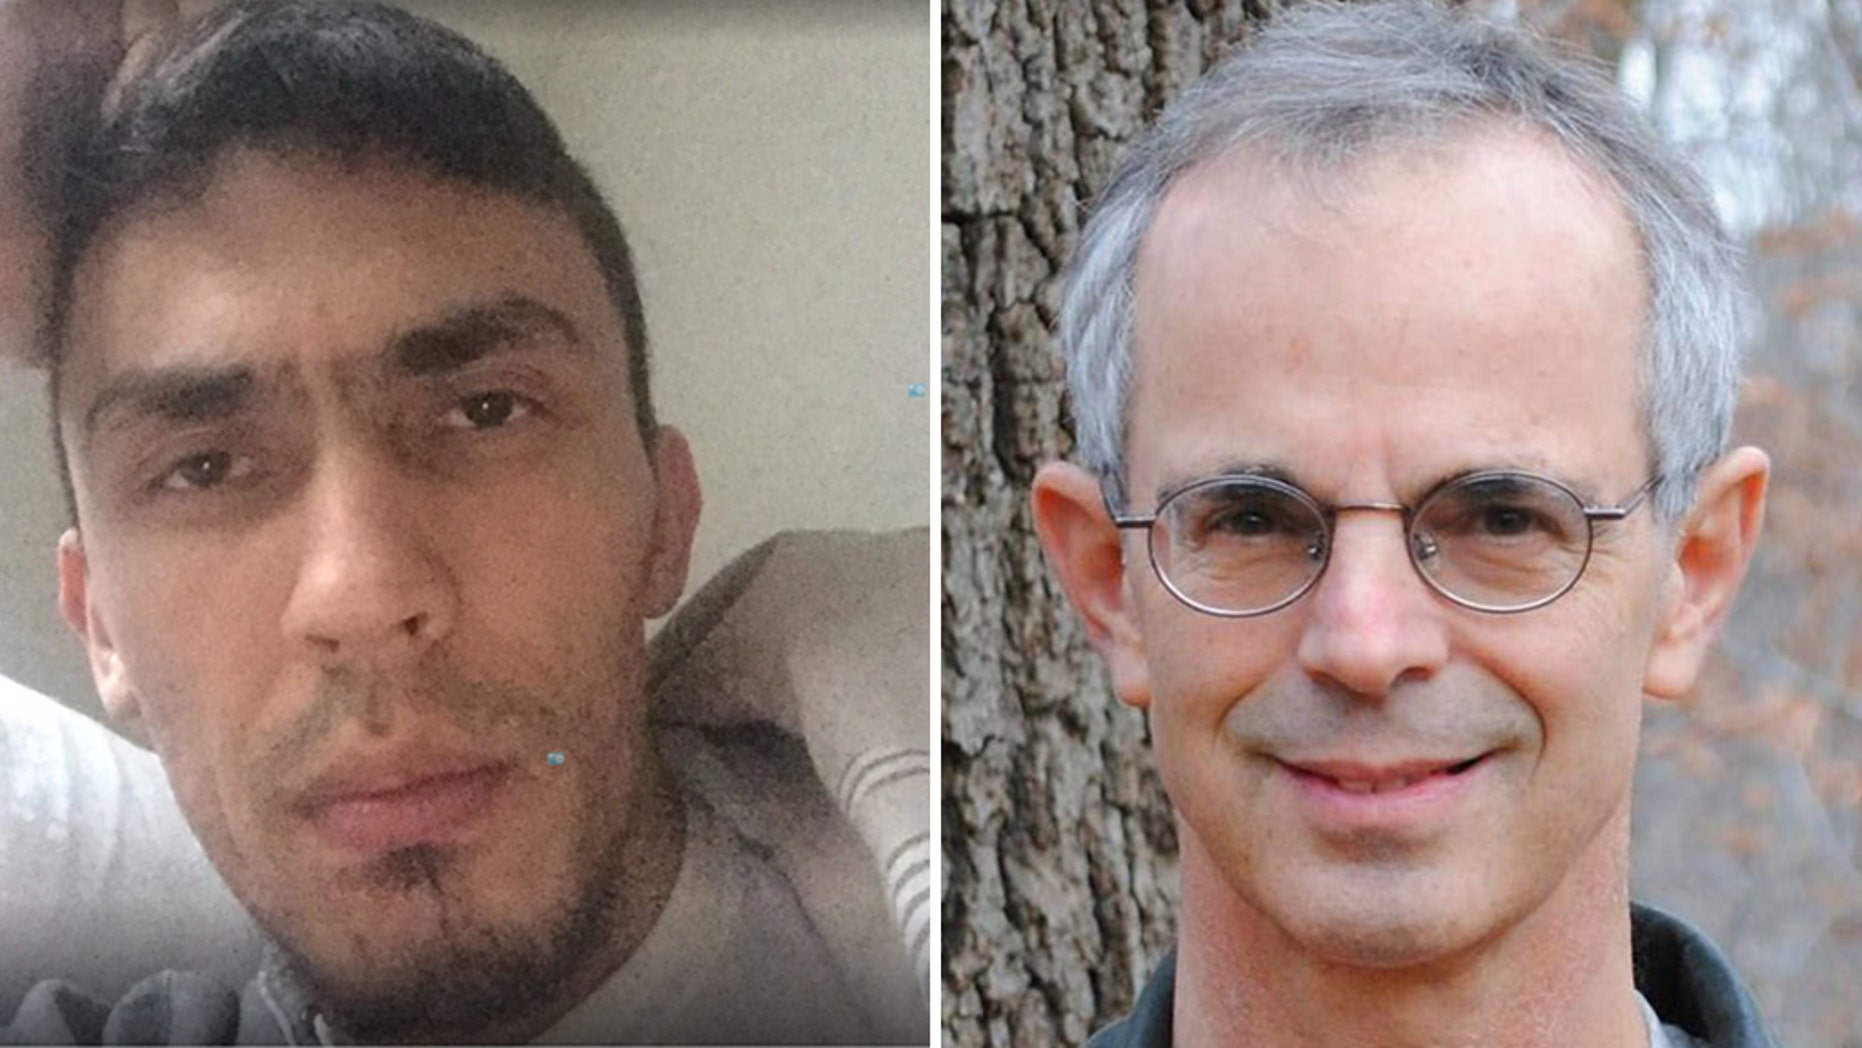 Mirzo Atadzhanov, 28, of Brooklyn, entered a plea of not guilty for murder and burglary charges in the May 7 death of Jeremy Safran, 66, a professor of psychology at The New School for Social Research as well as New York University's Postdoctoral Program in Psychotherapy & Psychoanalysis. (Google Plus / Facebook)